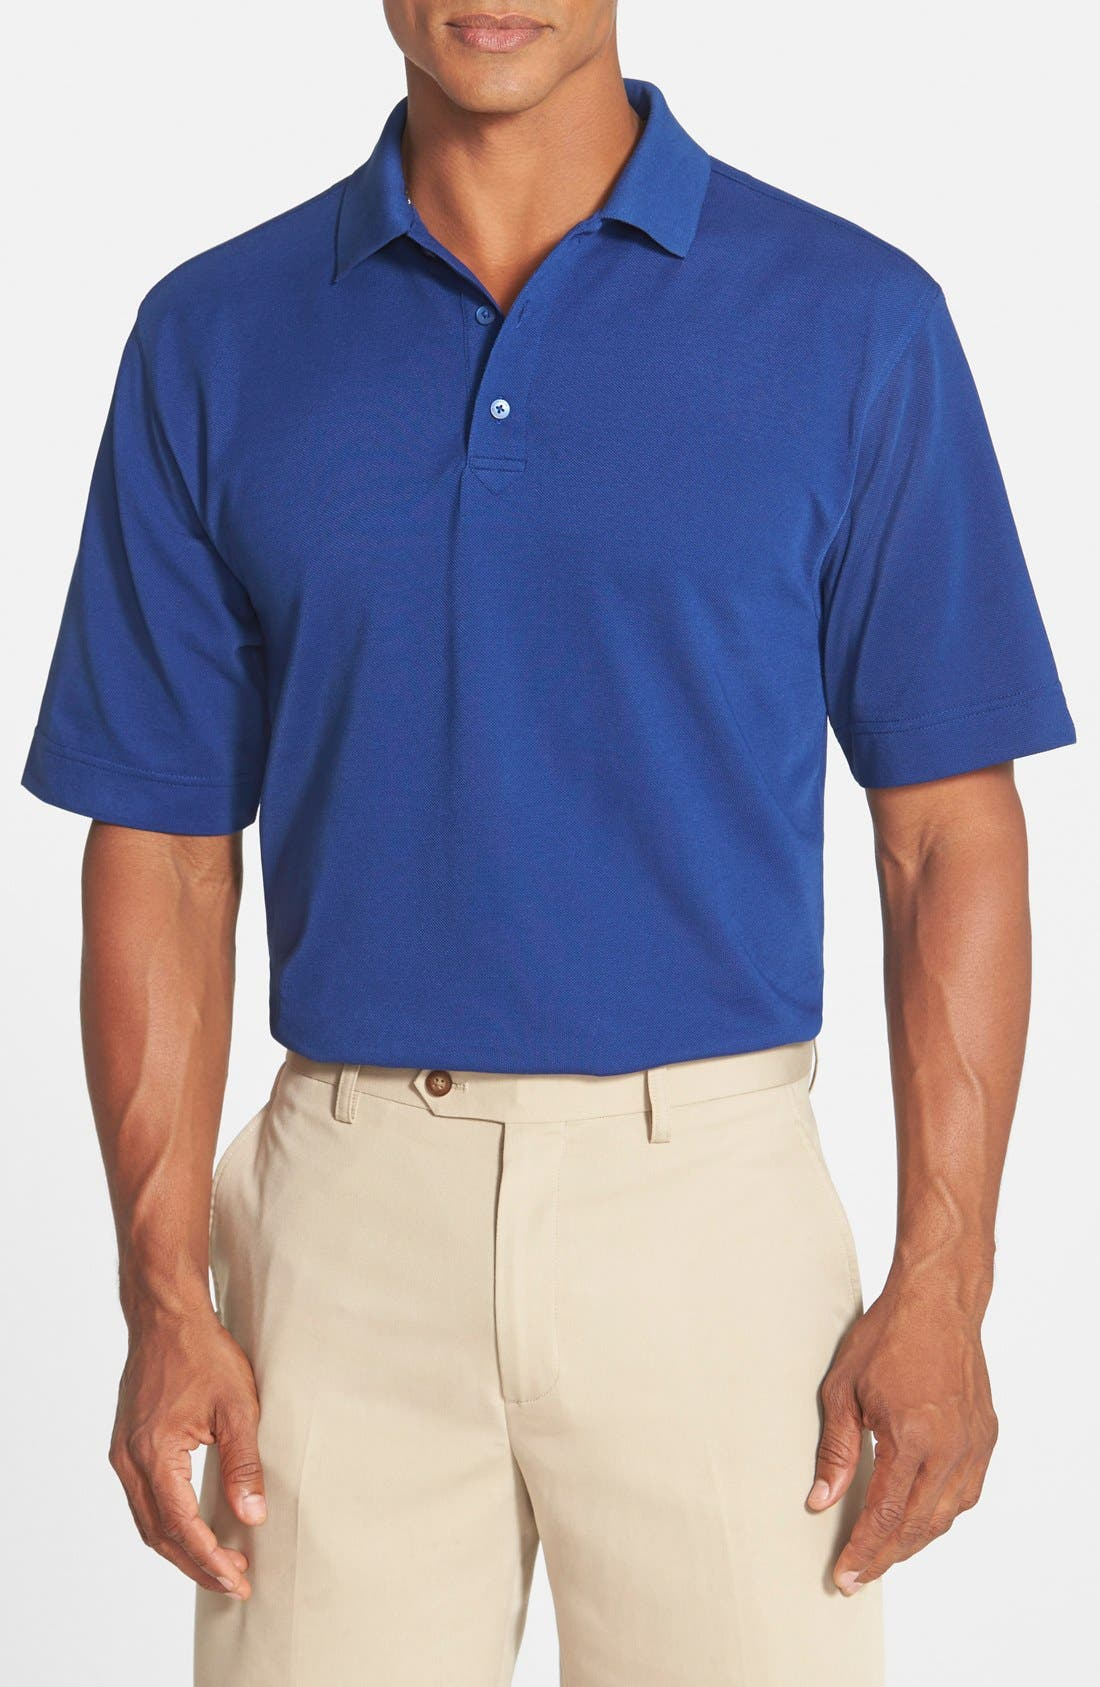 Alternate Image 1 Selected - Cutter & Buck 'Championship' Classic Fit DryTec Golf Polo (Online Only)